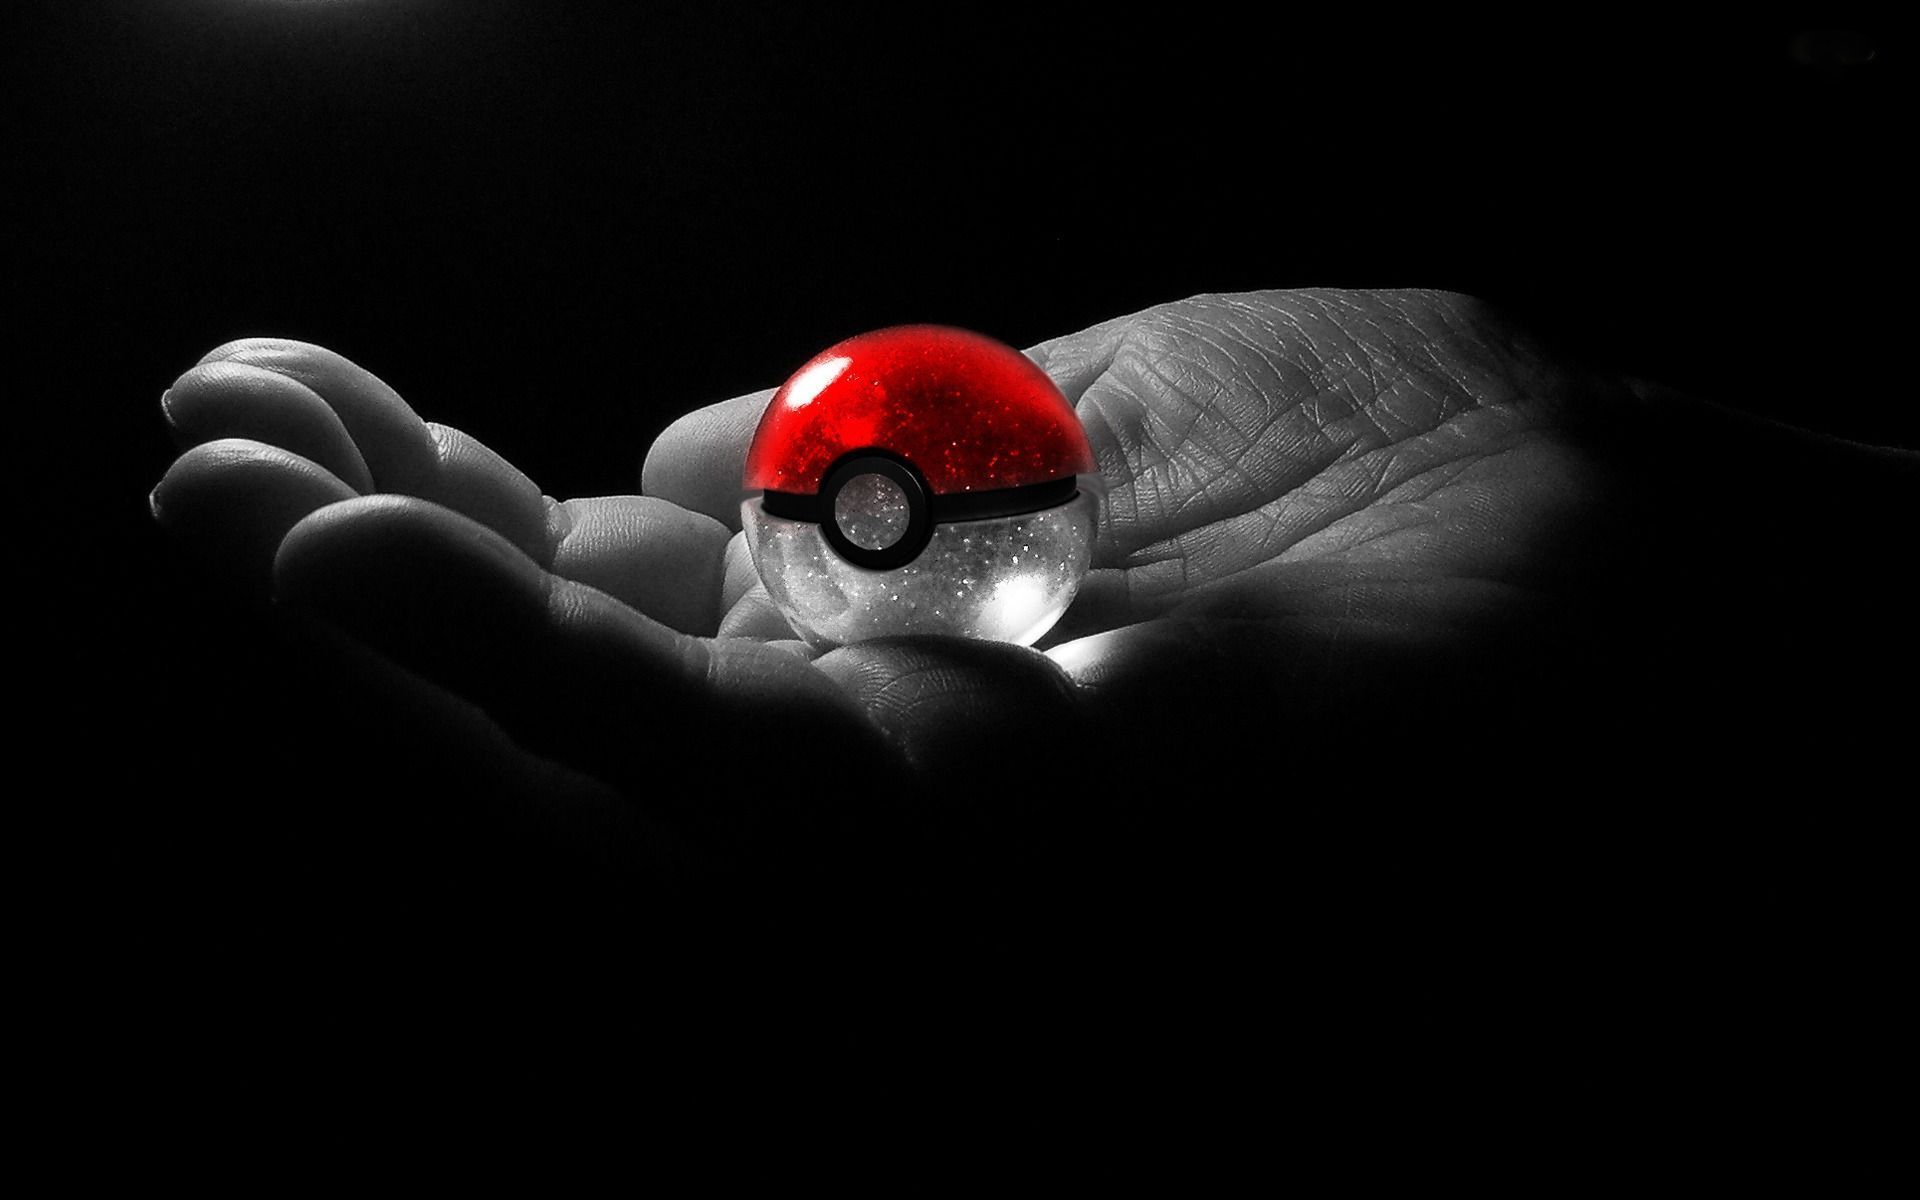 Pokeball In Hand Computer Wallpapers Desktop Backgrounds 1920x1200 Id 519728